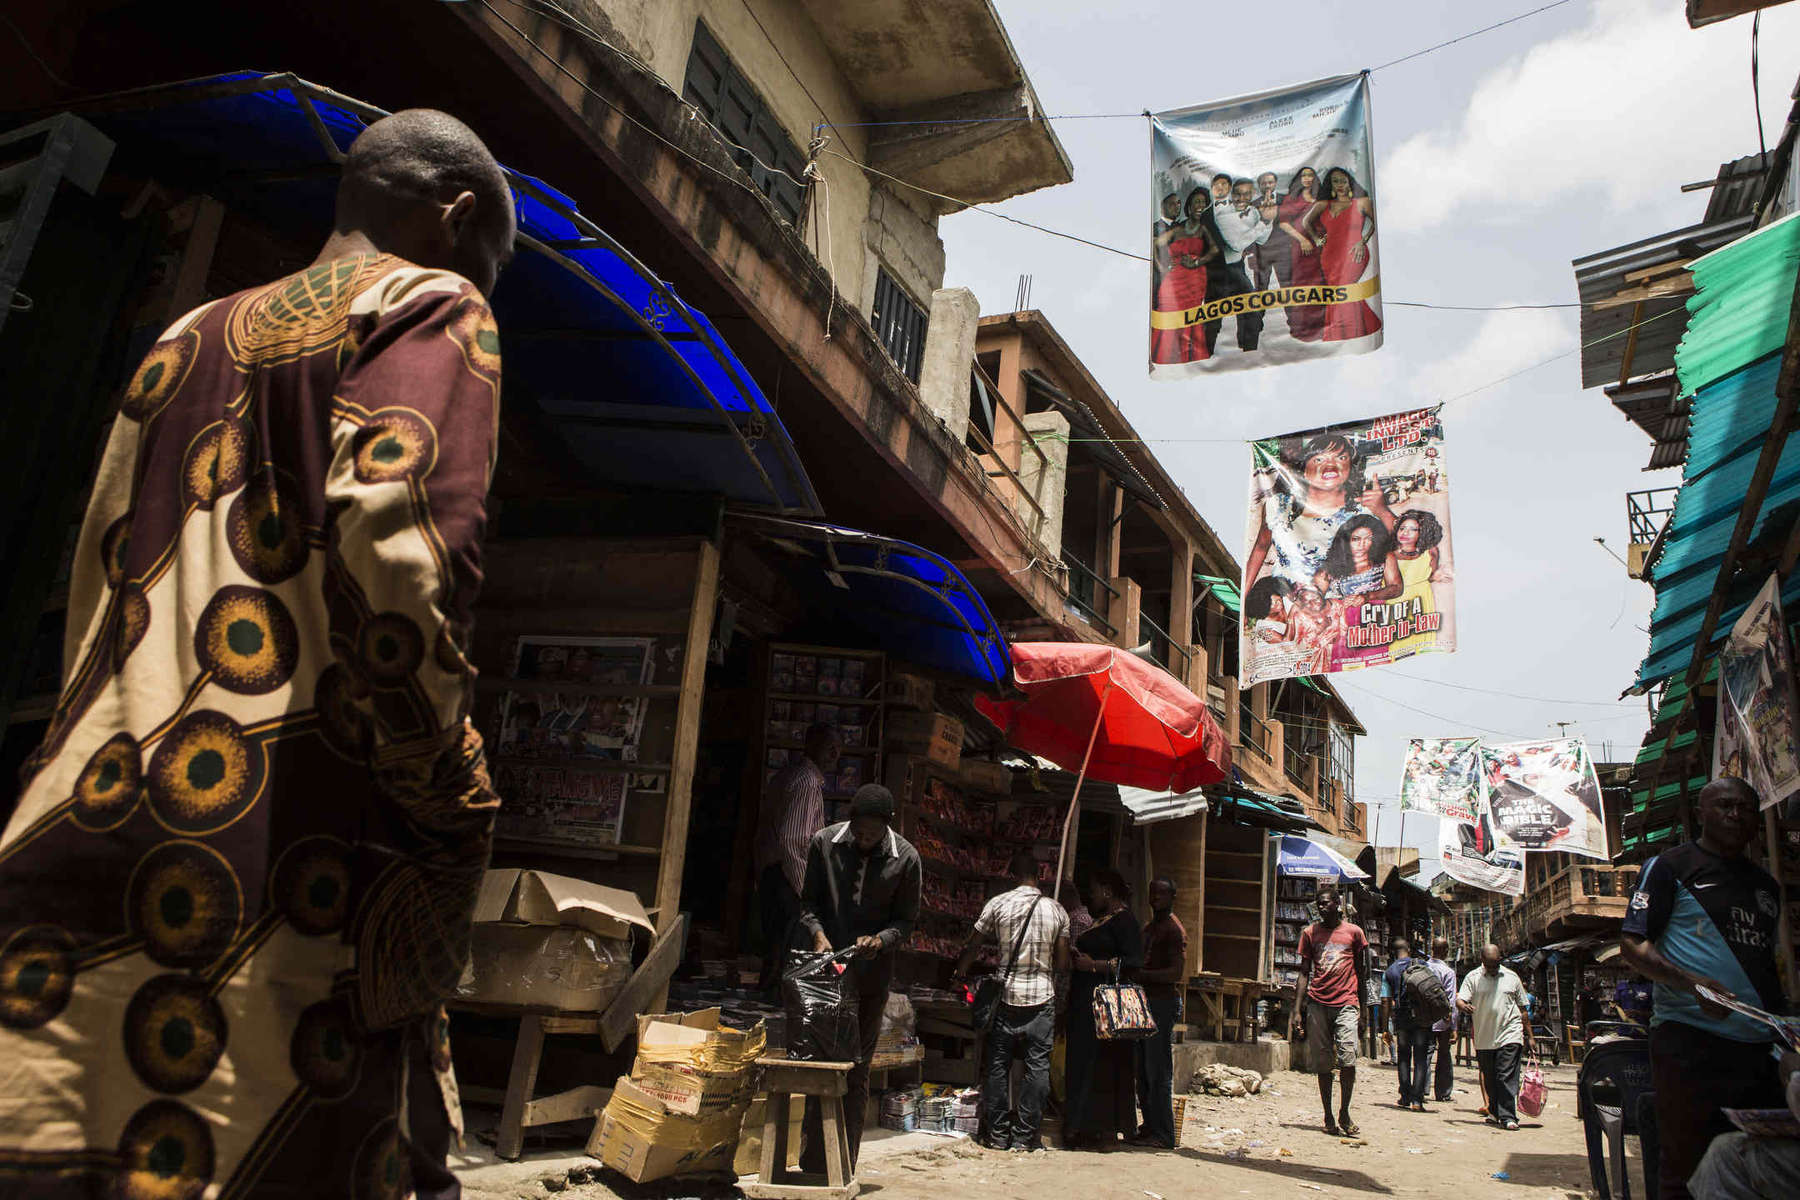 Alaba Market was the birthplace of the Nollywood Industry and is still the biggest hub for buying and selling movies.